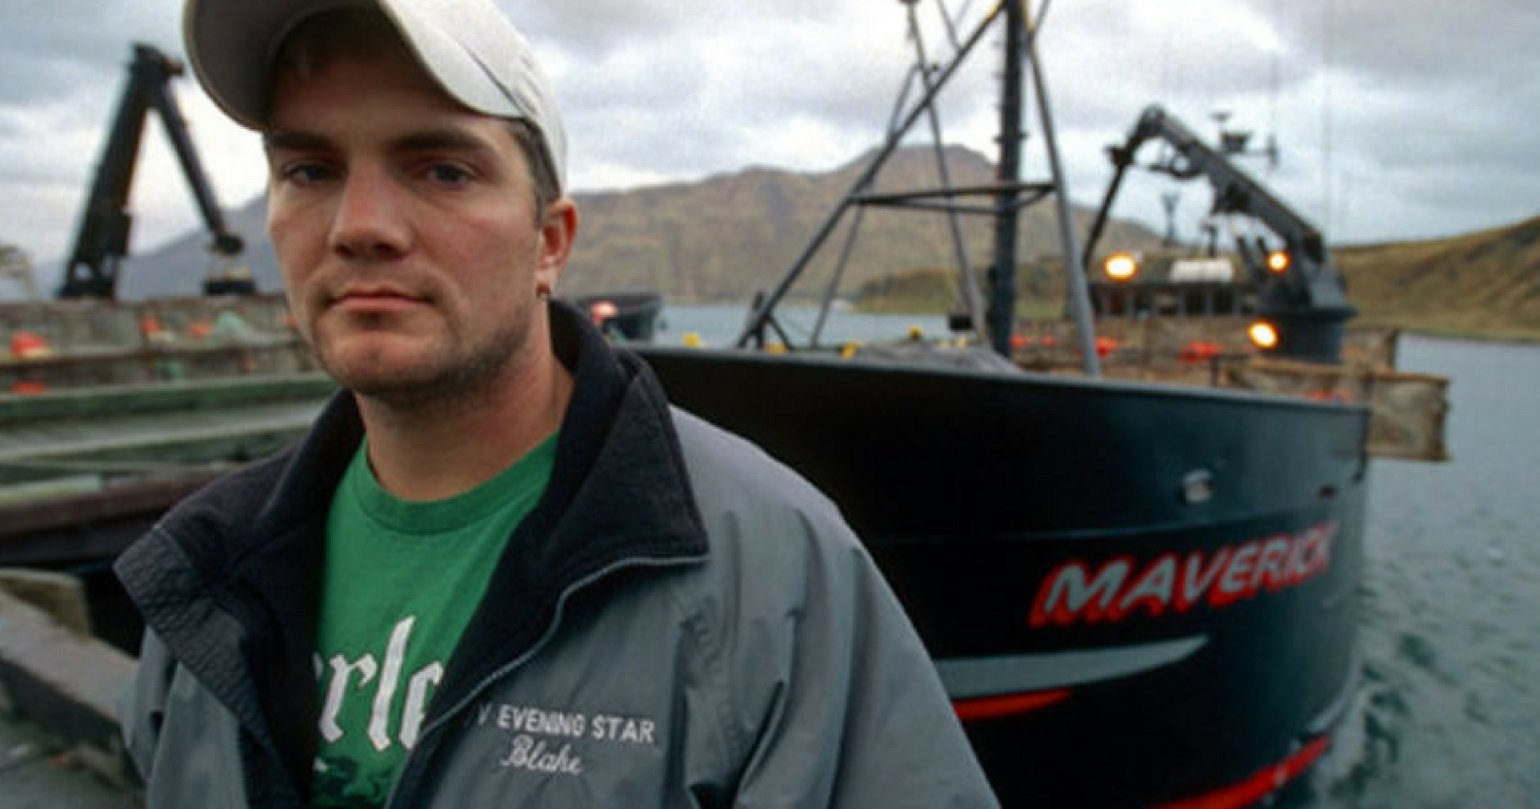 Deadliest Catch star Blake Painter found dead at 38